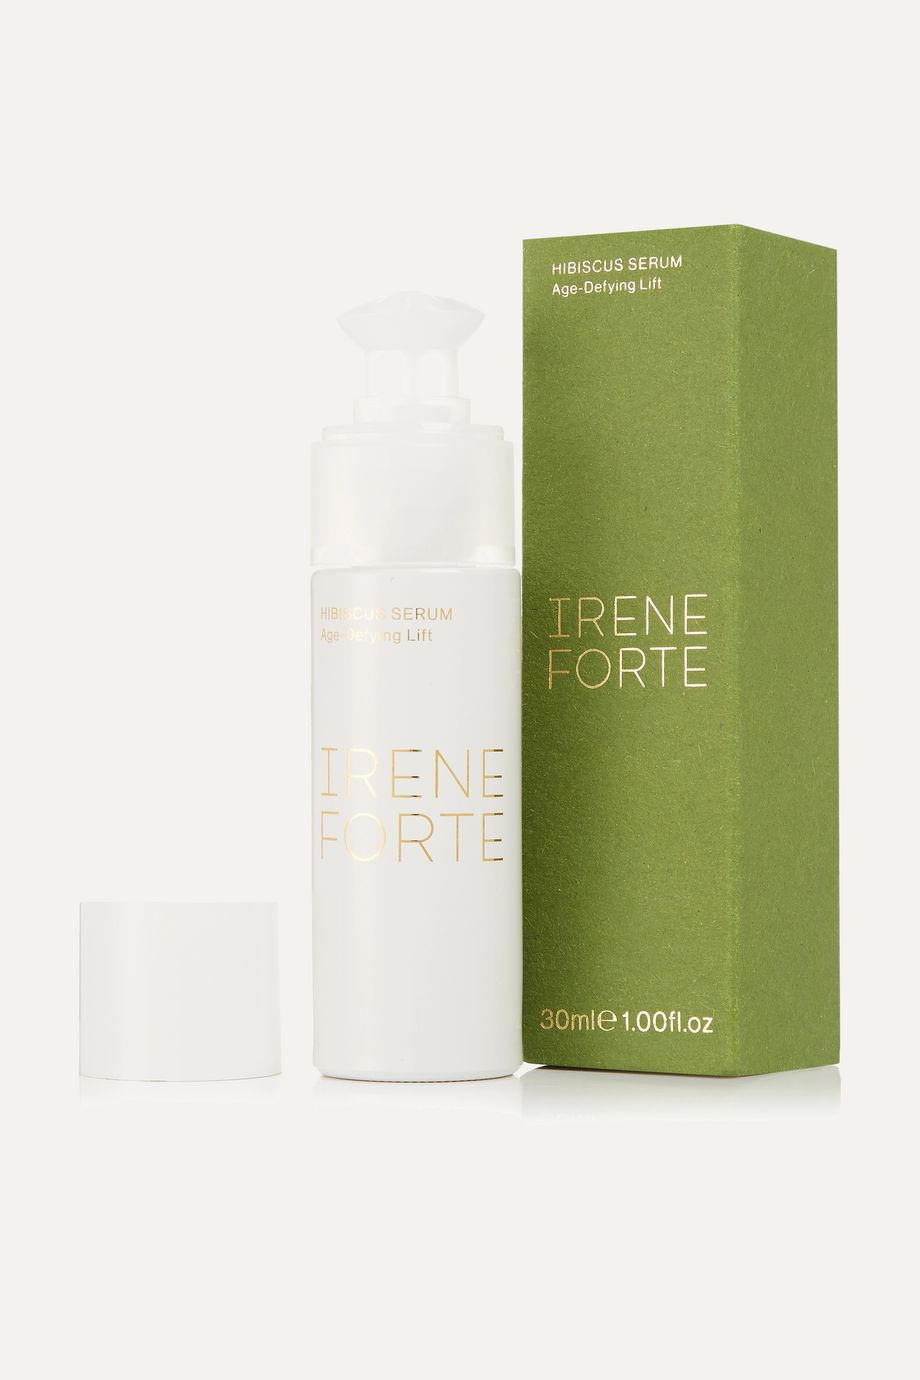 Irene Forte + NET SUSTAIN Age-Defying Lift Hibiscus Serum, 30ml